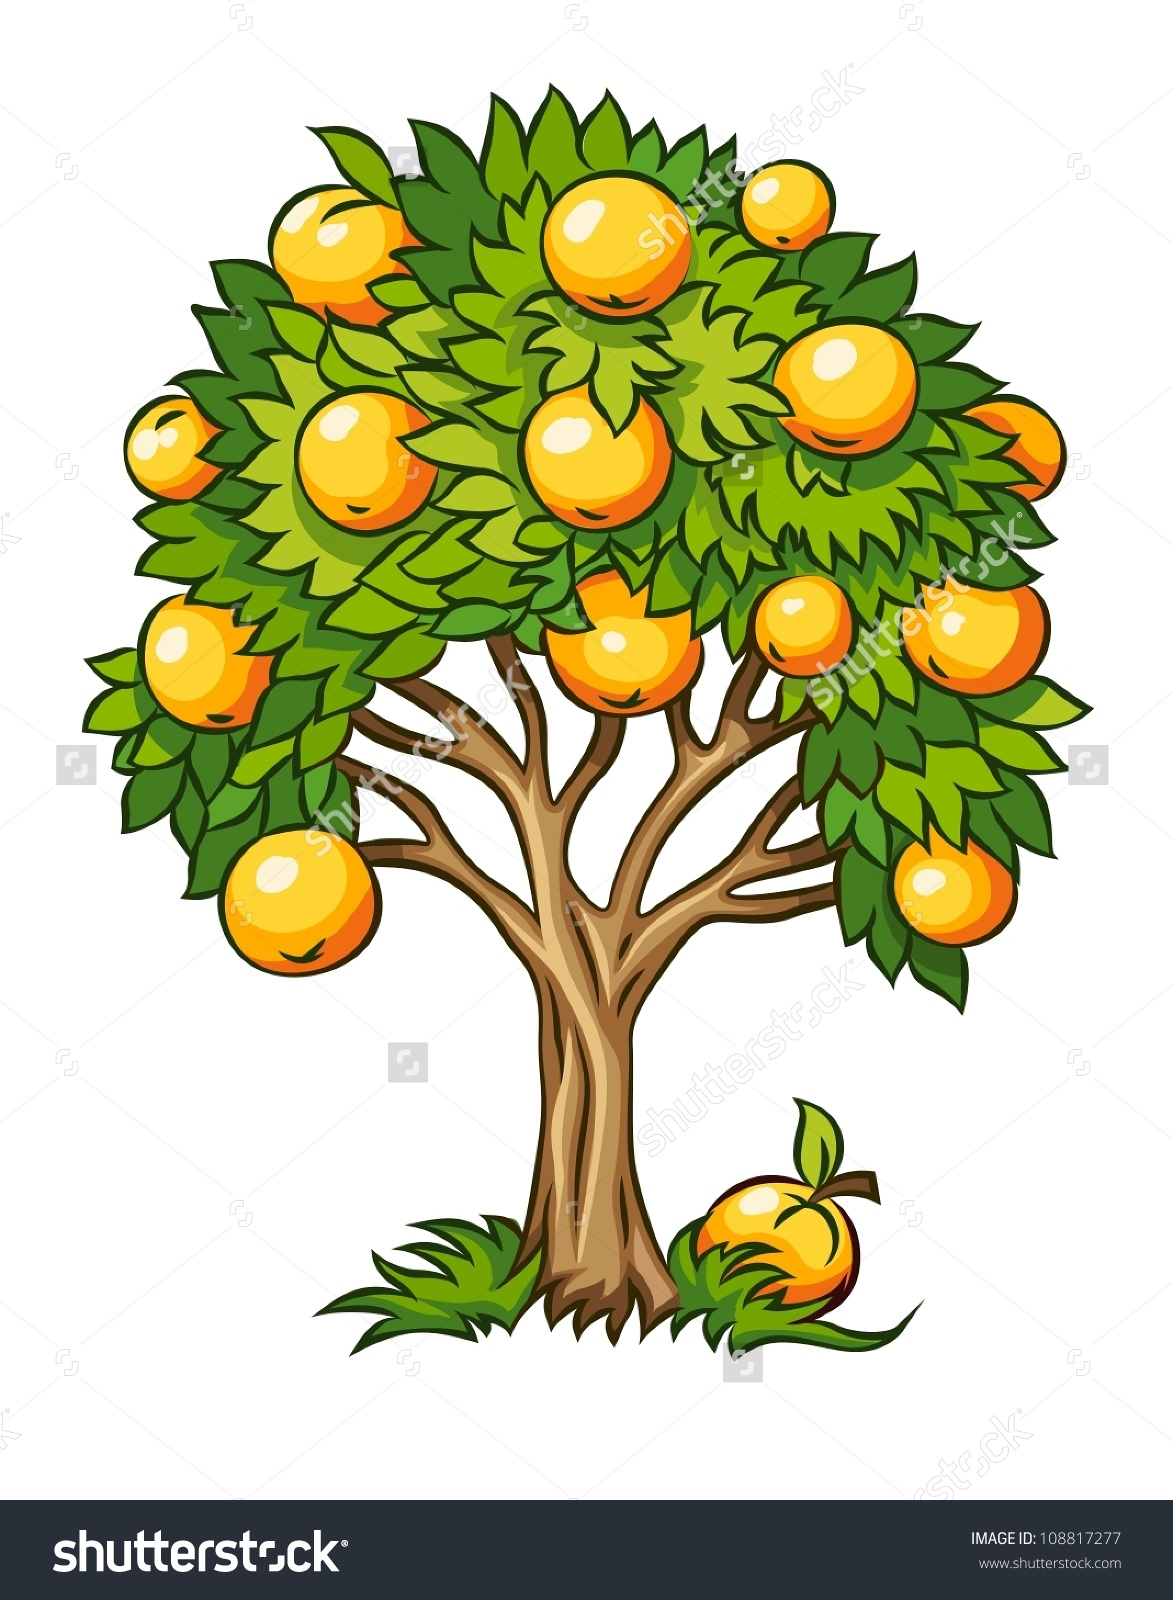 Fruit Tree Vector Illustration Isolated On Stock Vector 108817277.